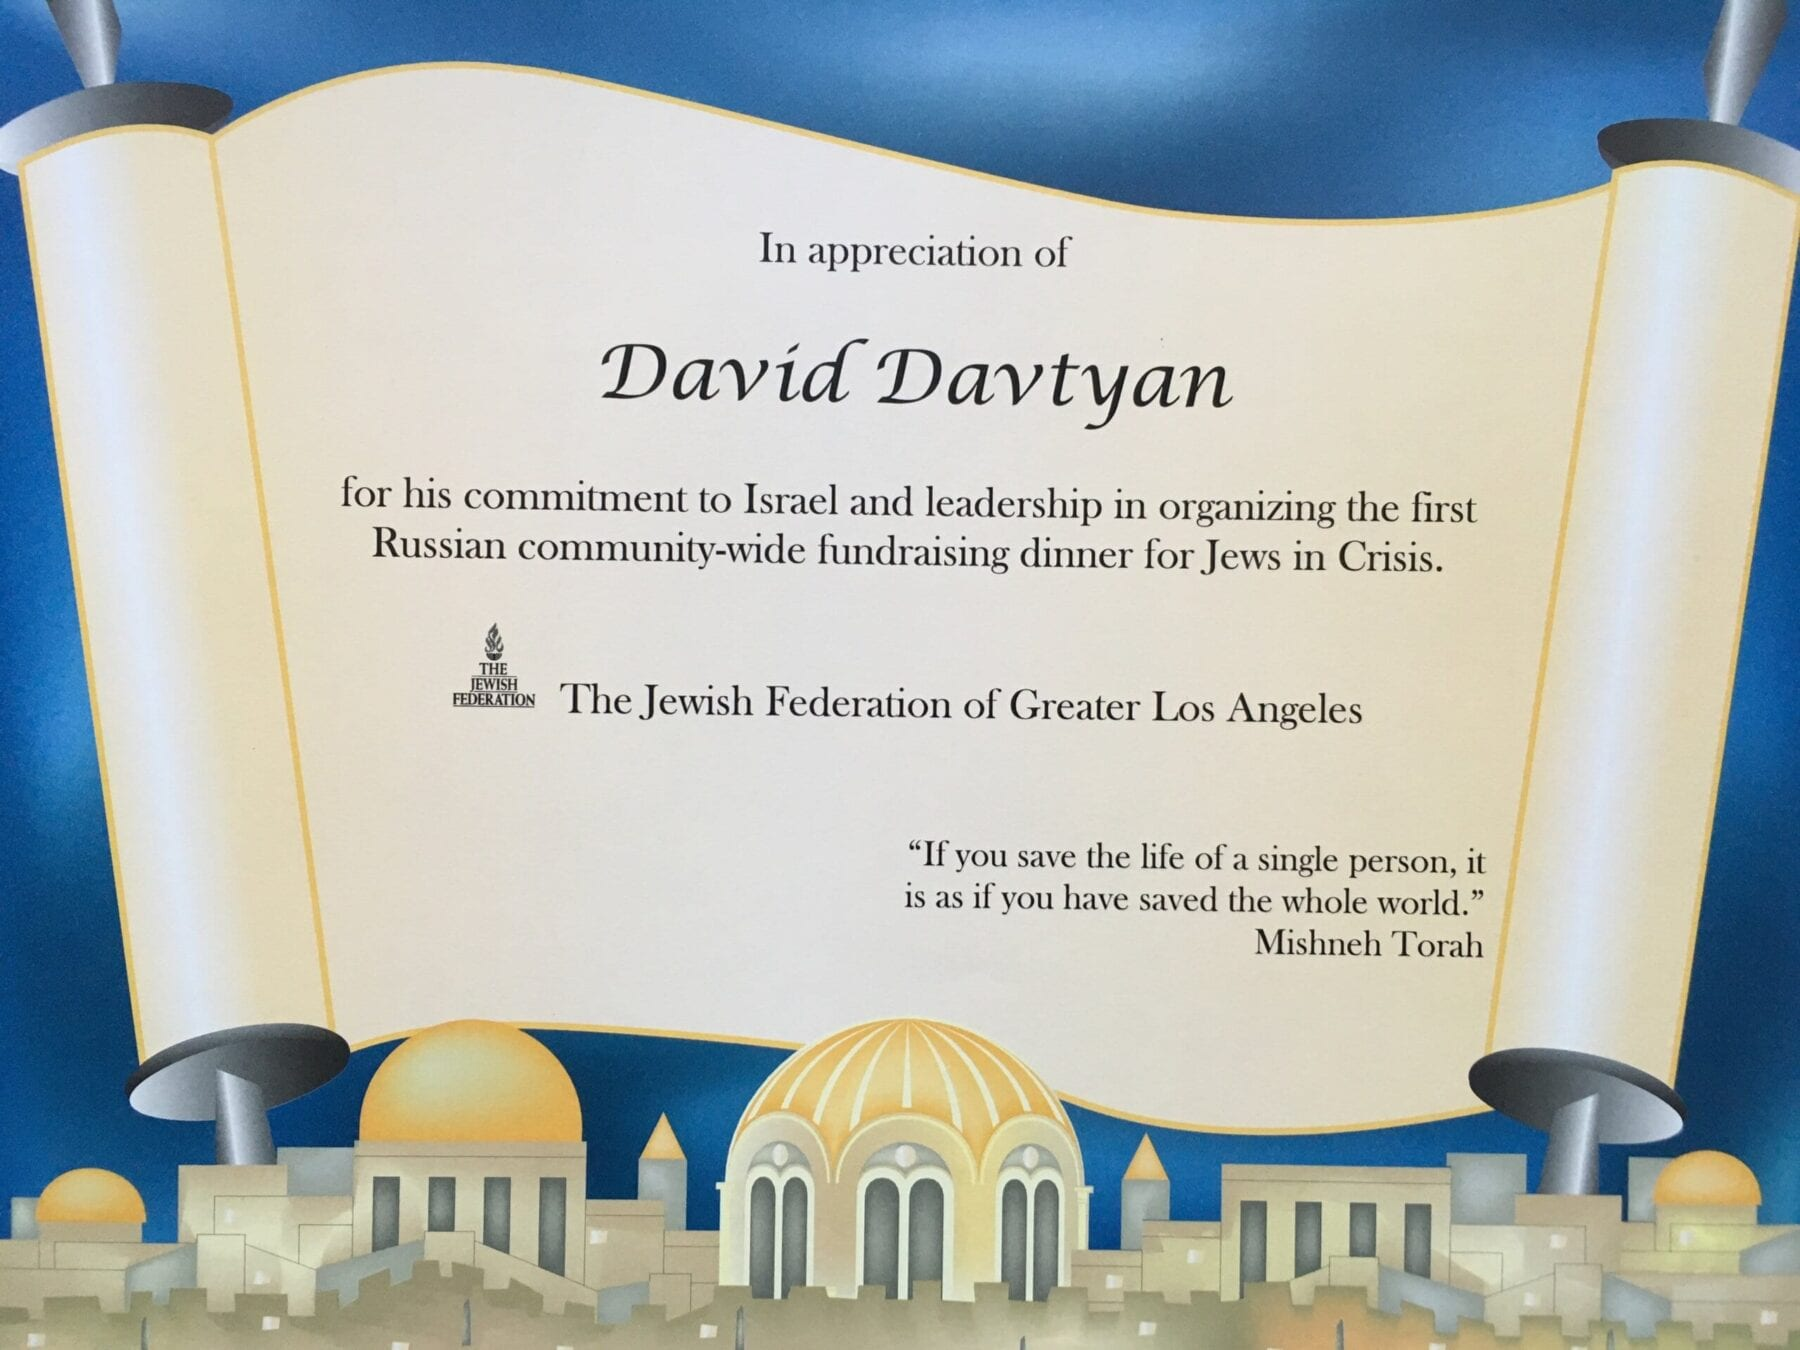 Dr. David Davtyan's Certificate Of Appreciation For Organizing The First Russian Community-Wide Fundraising Dinner For Jews In Christ